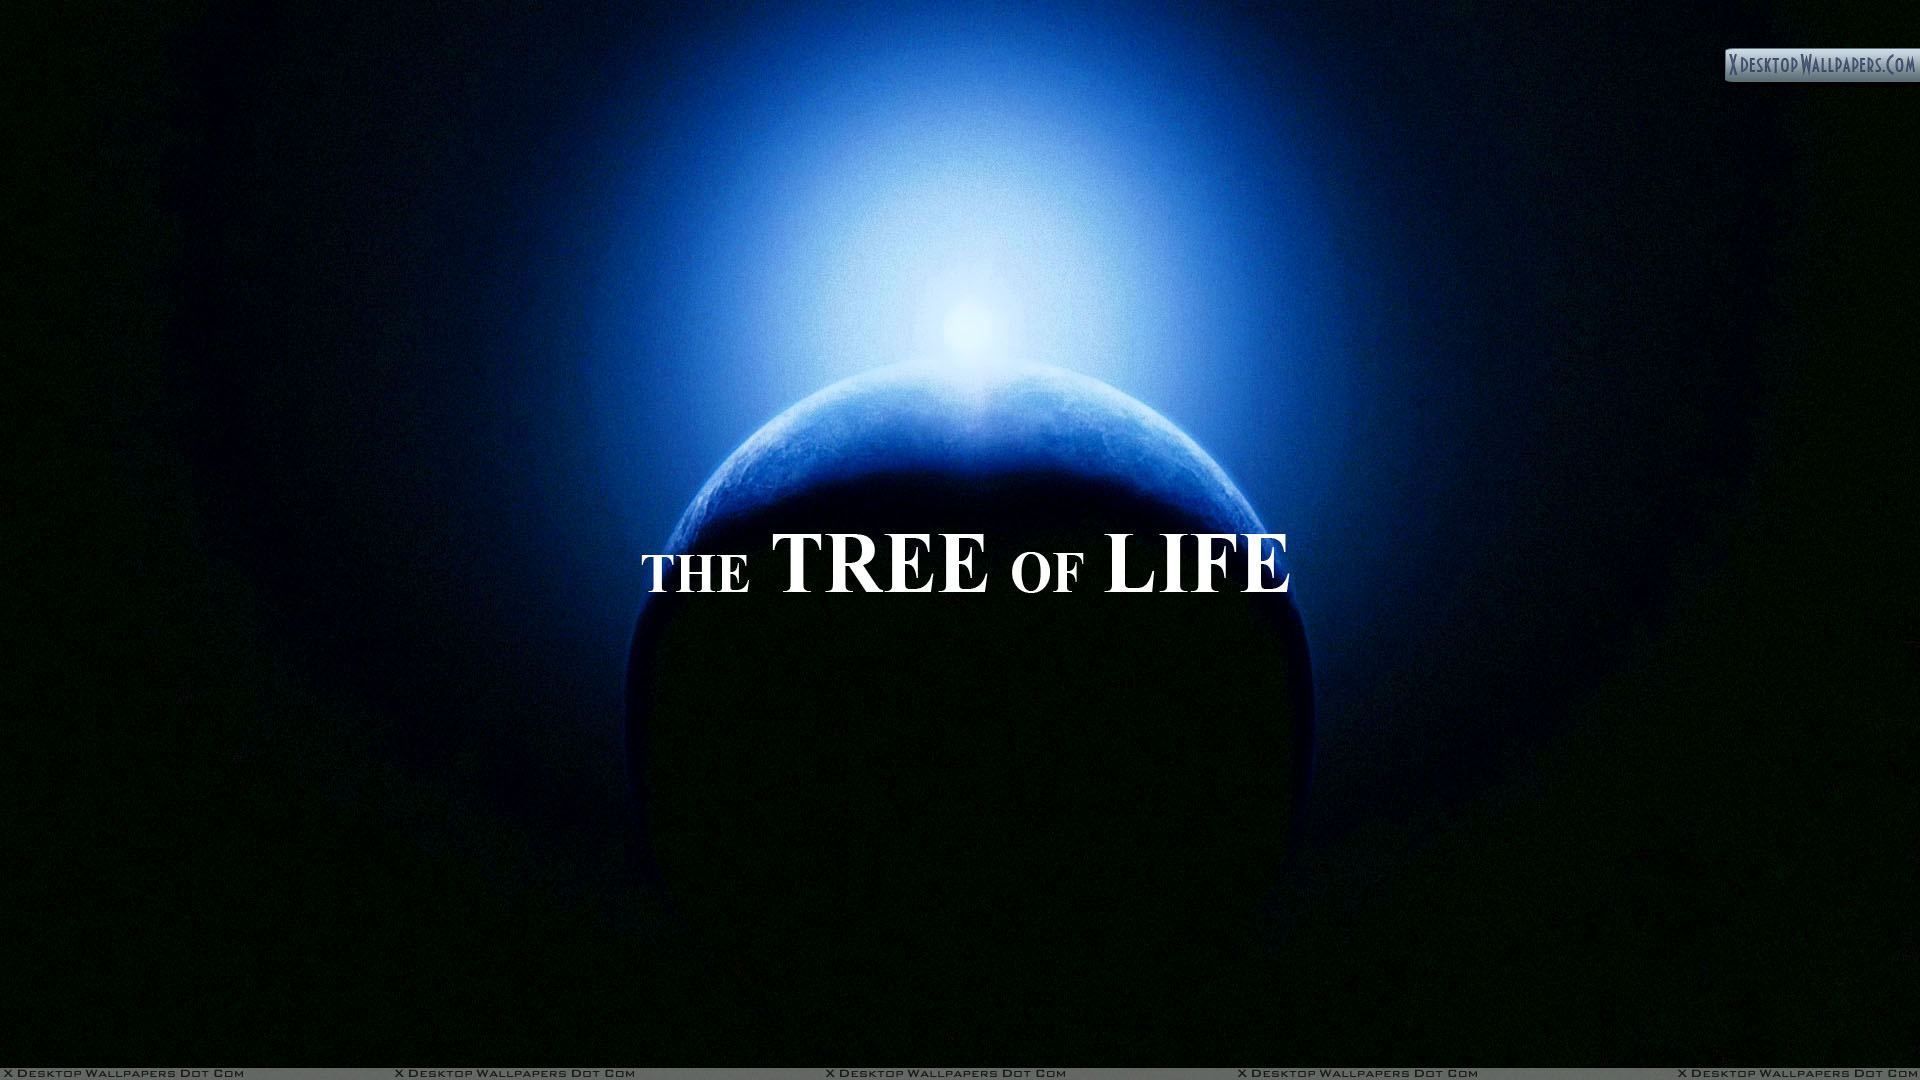 The Tree Of Life A Life Journey Wallpaper